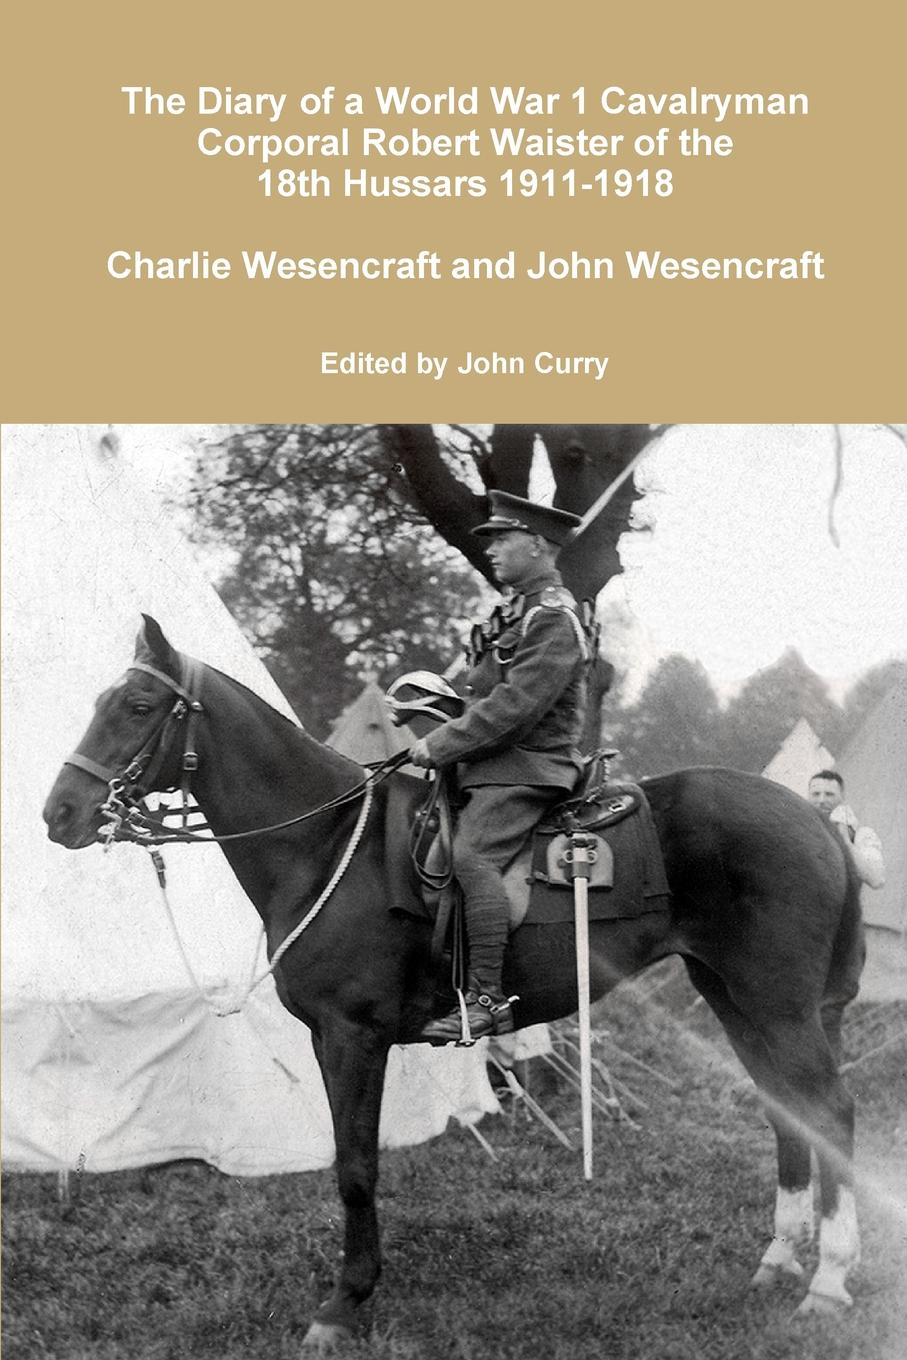 John Curry, Charlie Wesencraft, John Wesencraft The Diary of a World War 1 Cavalryman Corporal Robert Waister of the 18th Hussars 1911-1918 louis de robien the diary of a diplomat in russia 1917 1918